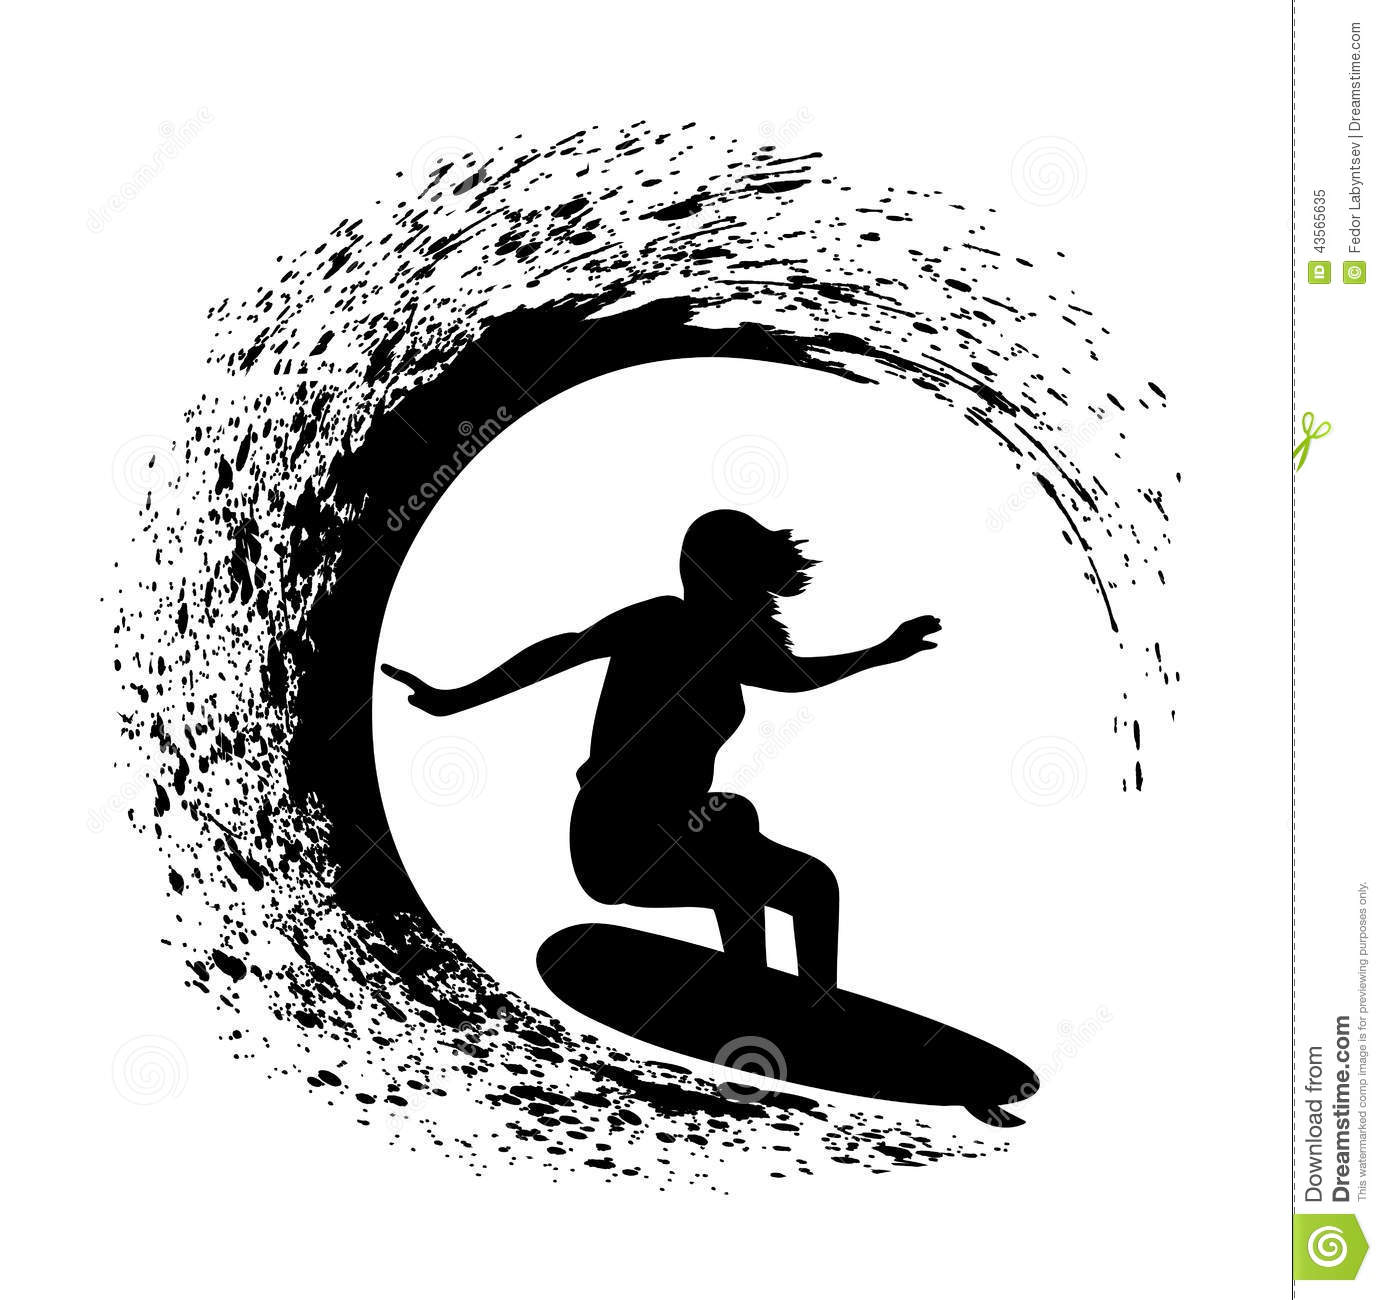 presented silhouette of the surfer on an ocean wave in style grungeOcean Silhouette Clip Art